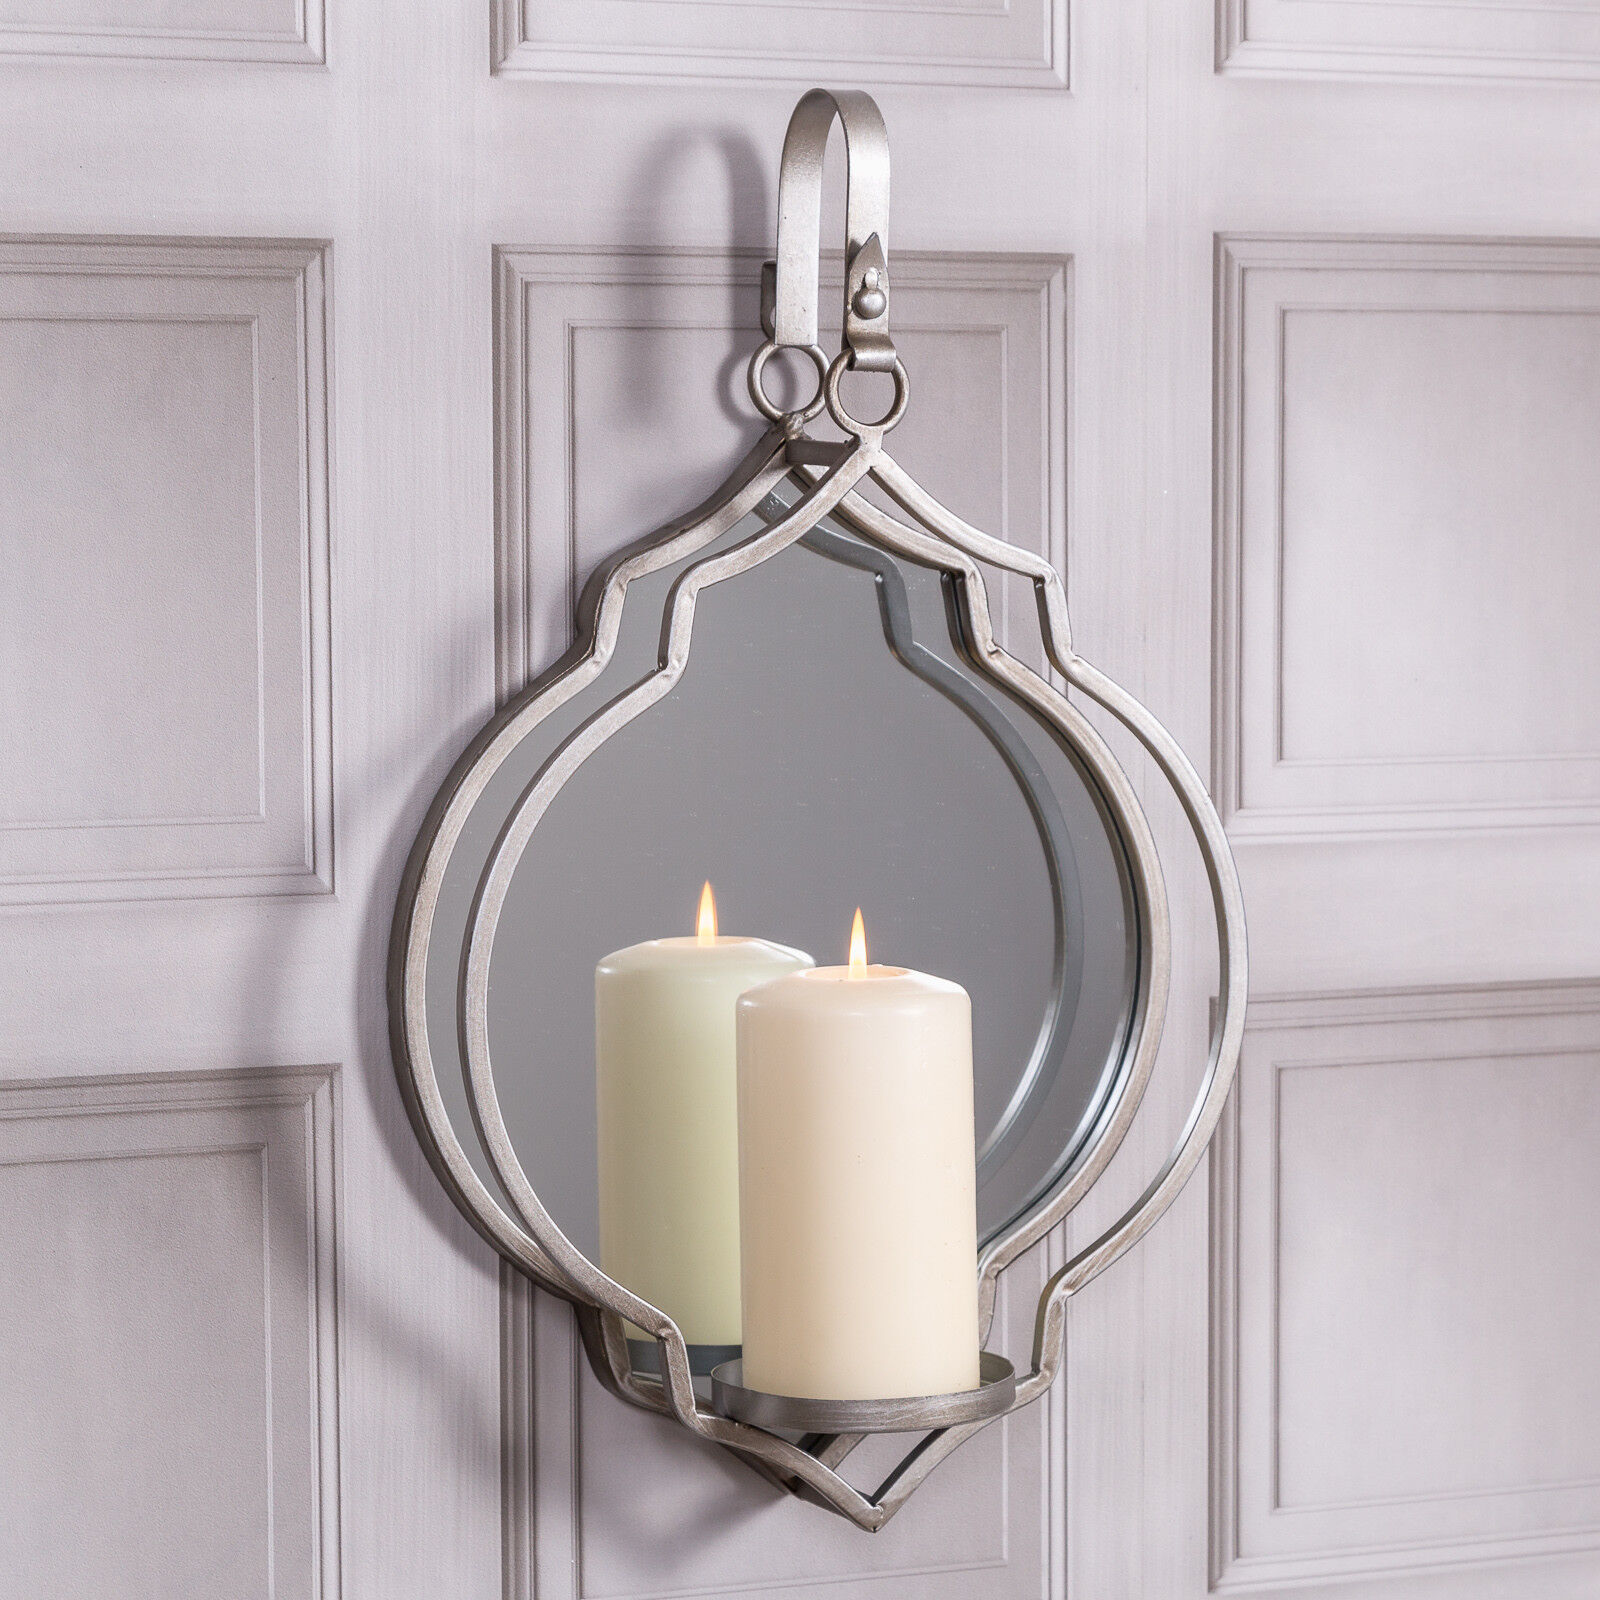 Large Mirrored Silver Candle Holder Wall Sconce Metal Glass Hanger Home Living For Sale Online Ebay